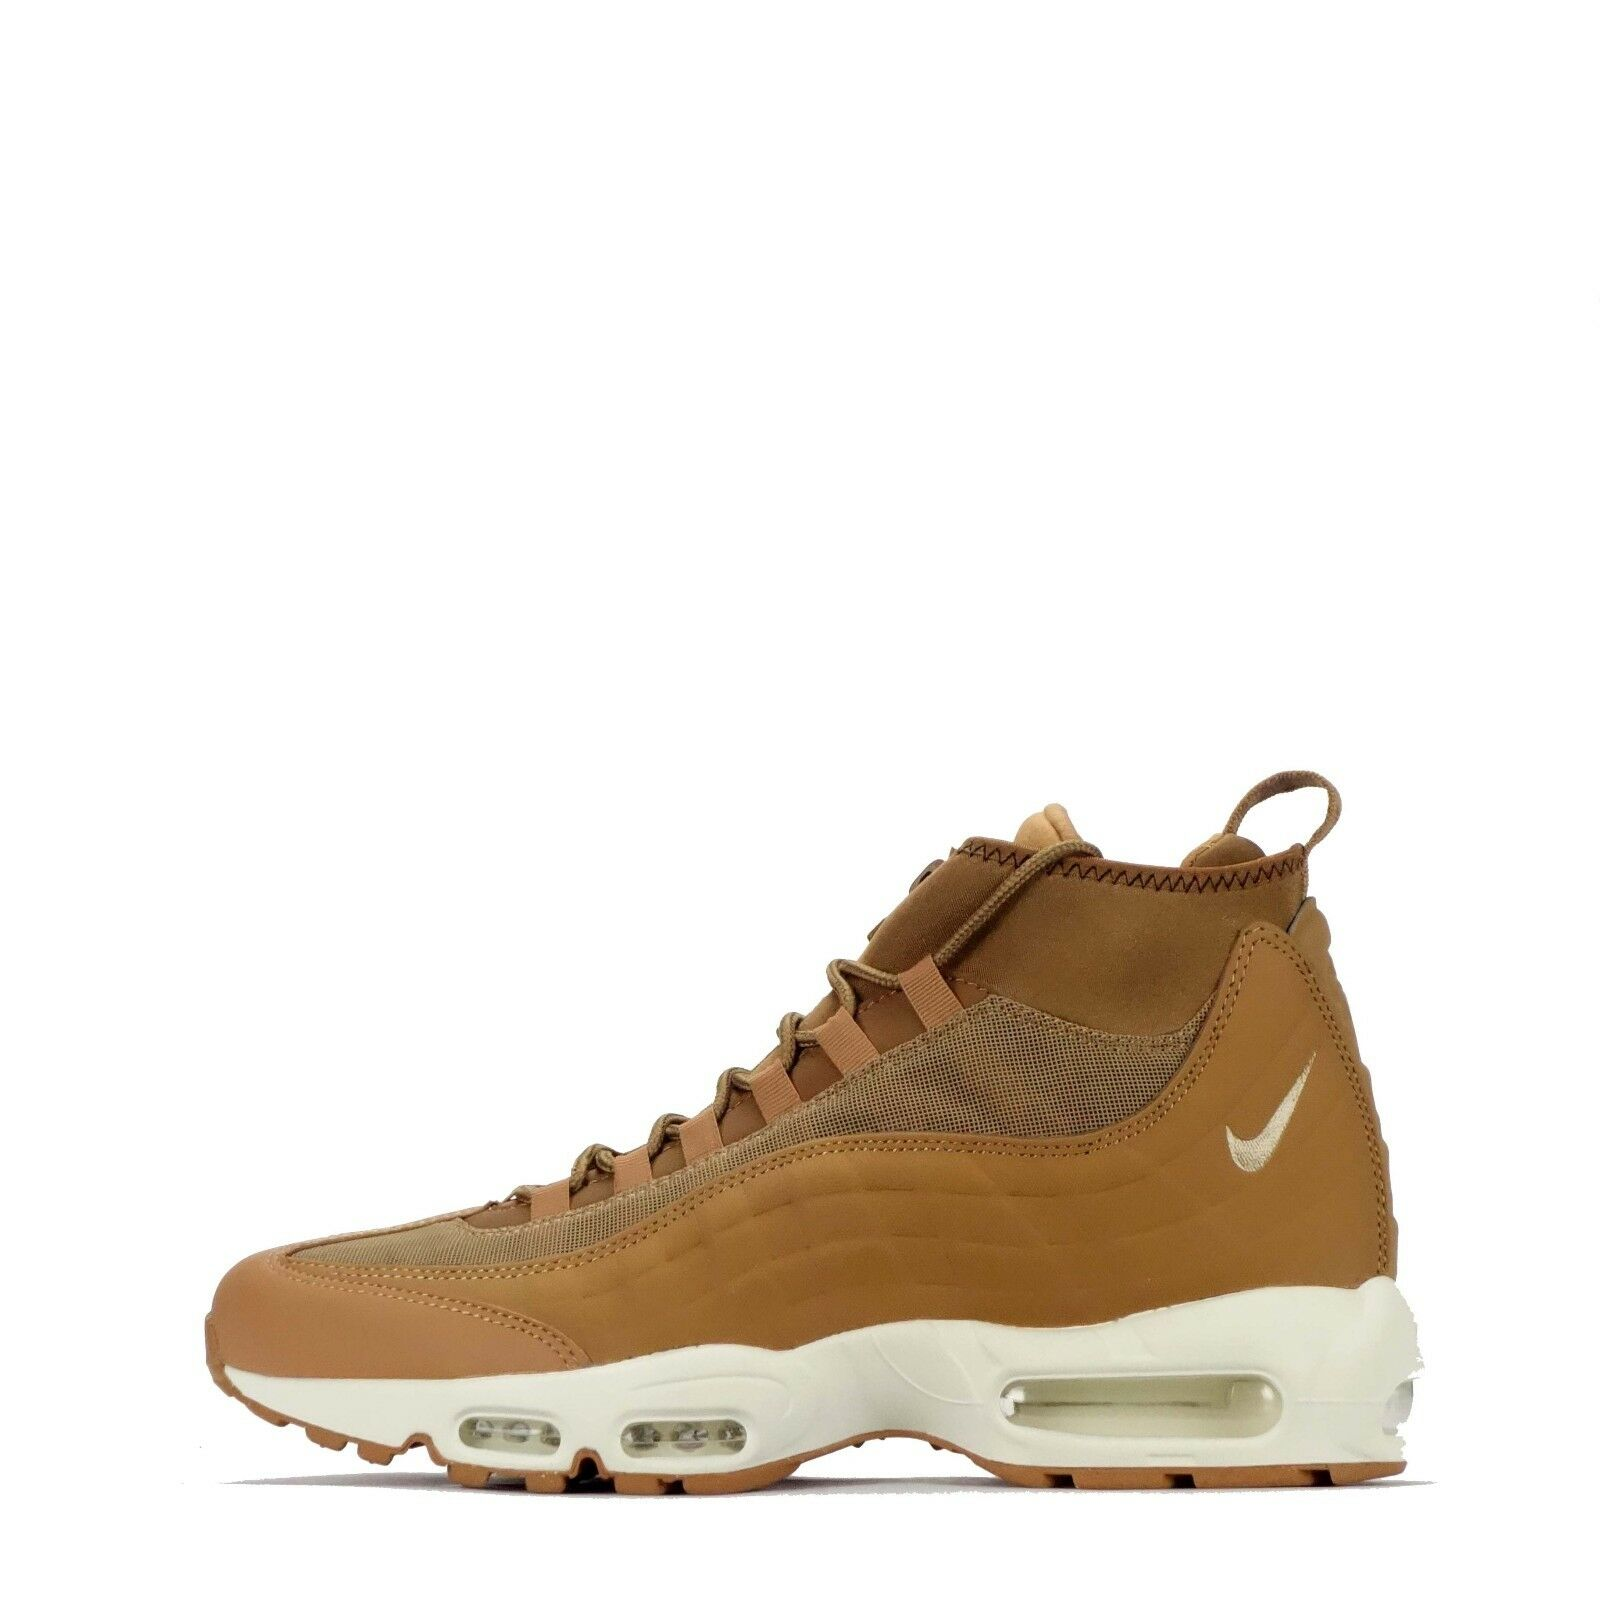 Nike Air Max 95 Sneakerboot UOMO MEDIO Scarpe in in lino / ALE BIRRA MARRONE